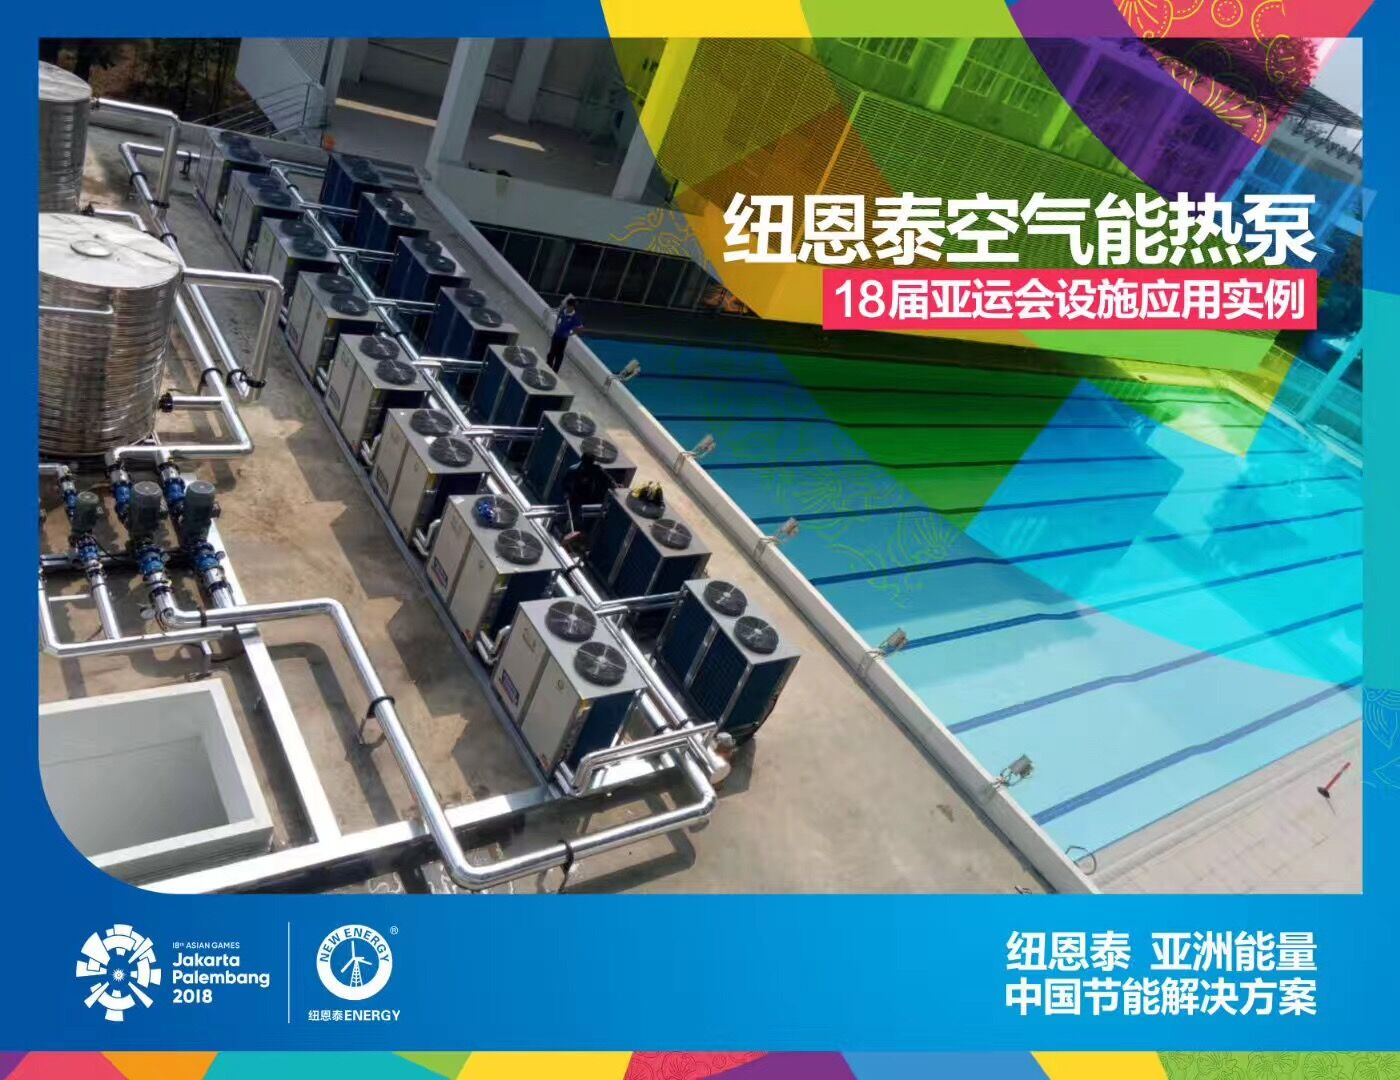 NULITE-Read New Energy Heat Pump in 2018 Asian Games News On Nulite Heat Pump-2